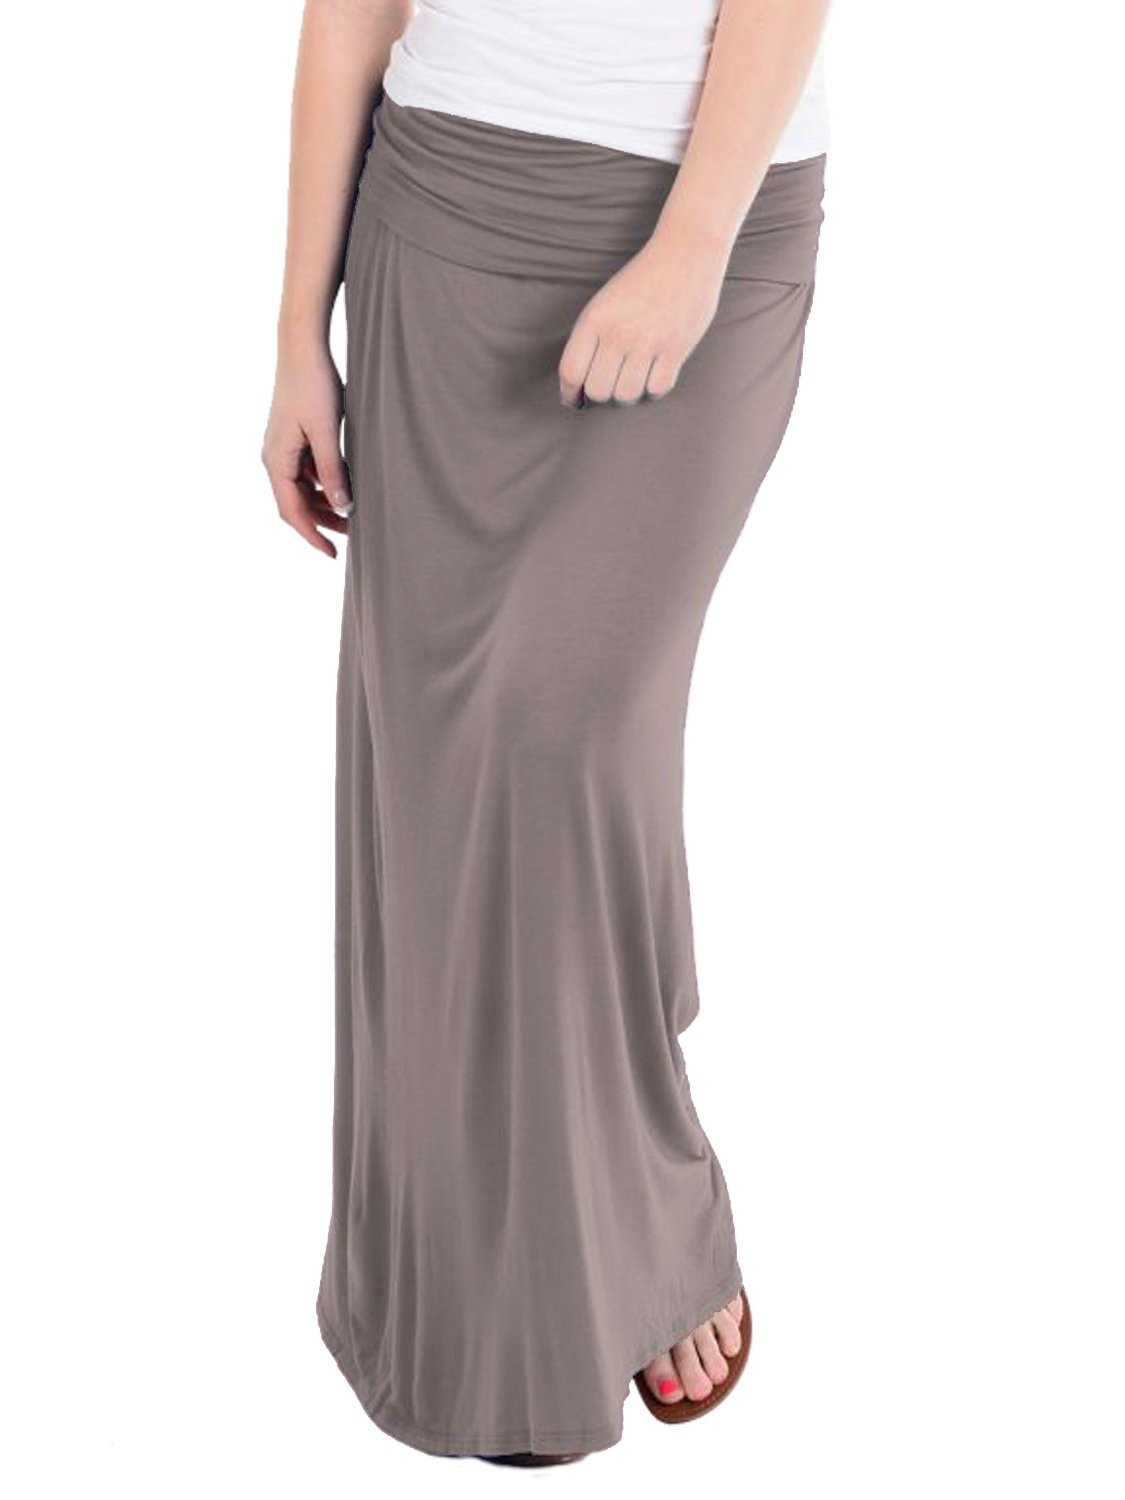 HyBrid & Company Women's Maxi Skirt W/Fold Over Waist Band KSK3097 Taupe 1X